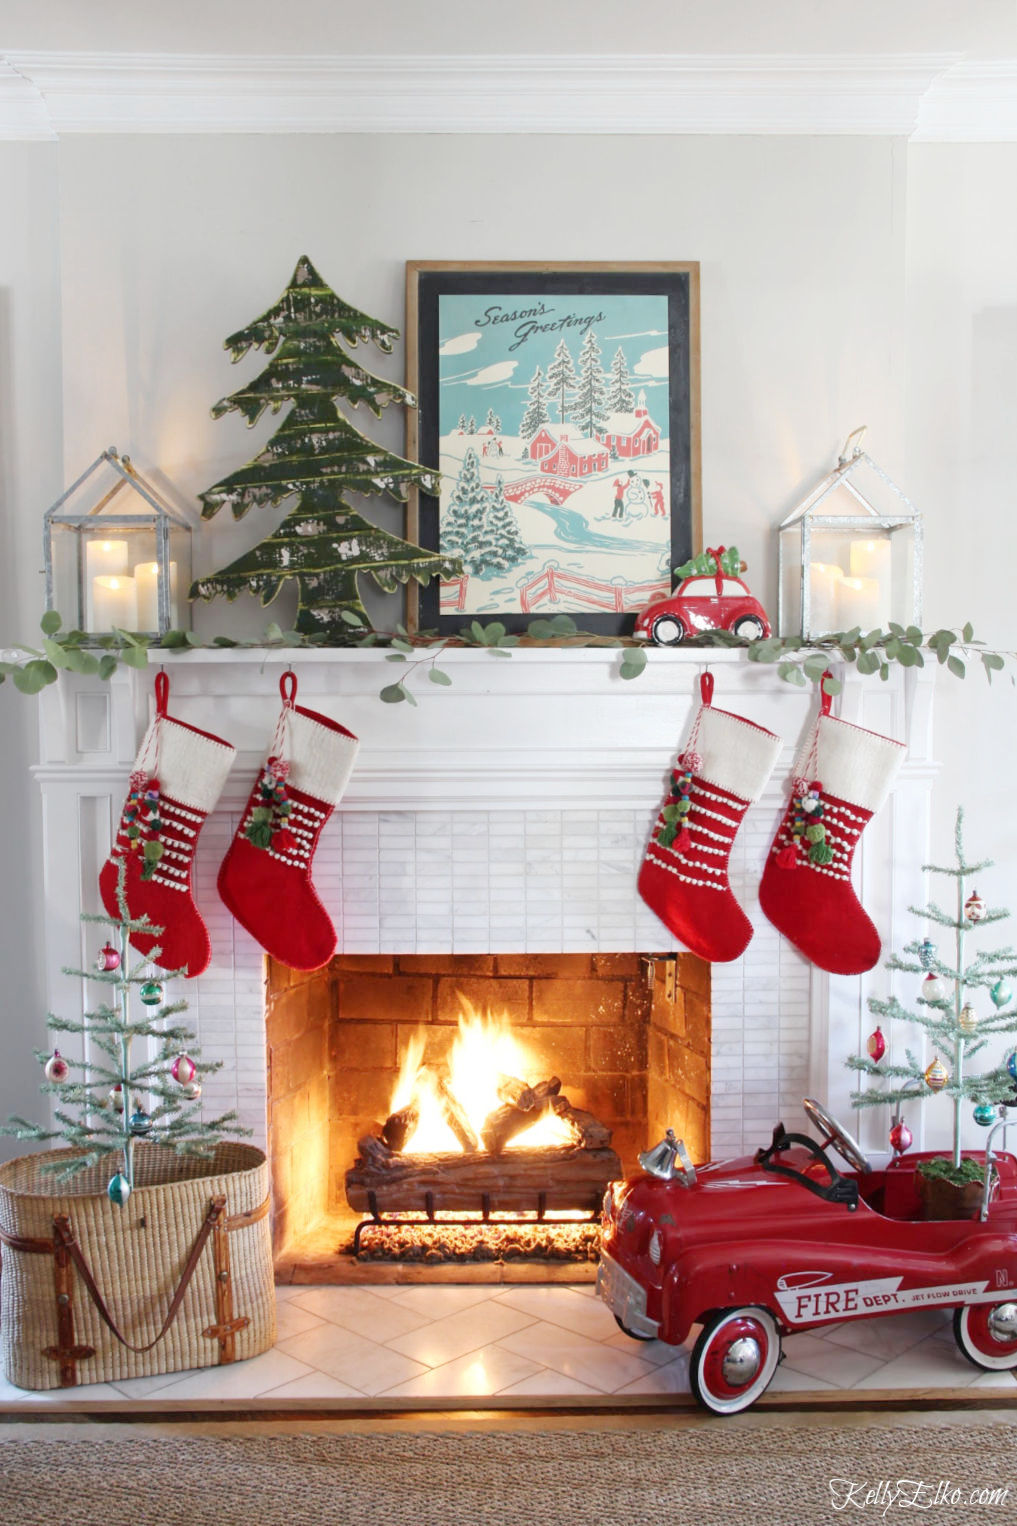 Christmas Home Tour filled with creative decorating ideas like this mantel with retro art kellyelko.com #christmas #christmastour #christmashometour #christmasmantel #vintagechristmas #farmhousechristmas #colorfulchristmas #cozychristmas #retrochristmas #christmasstockings #fireplace #vintagedecor